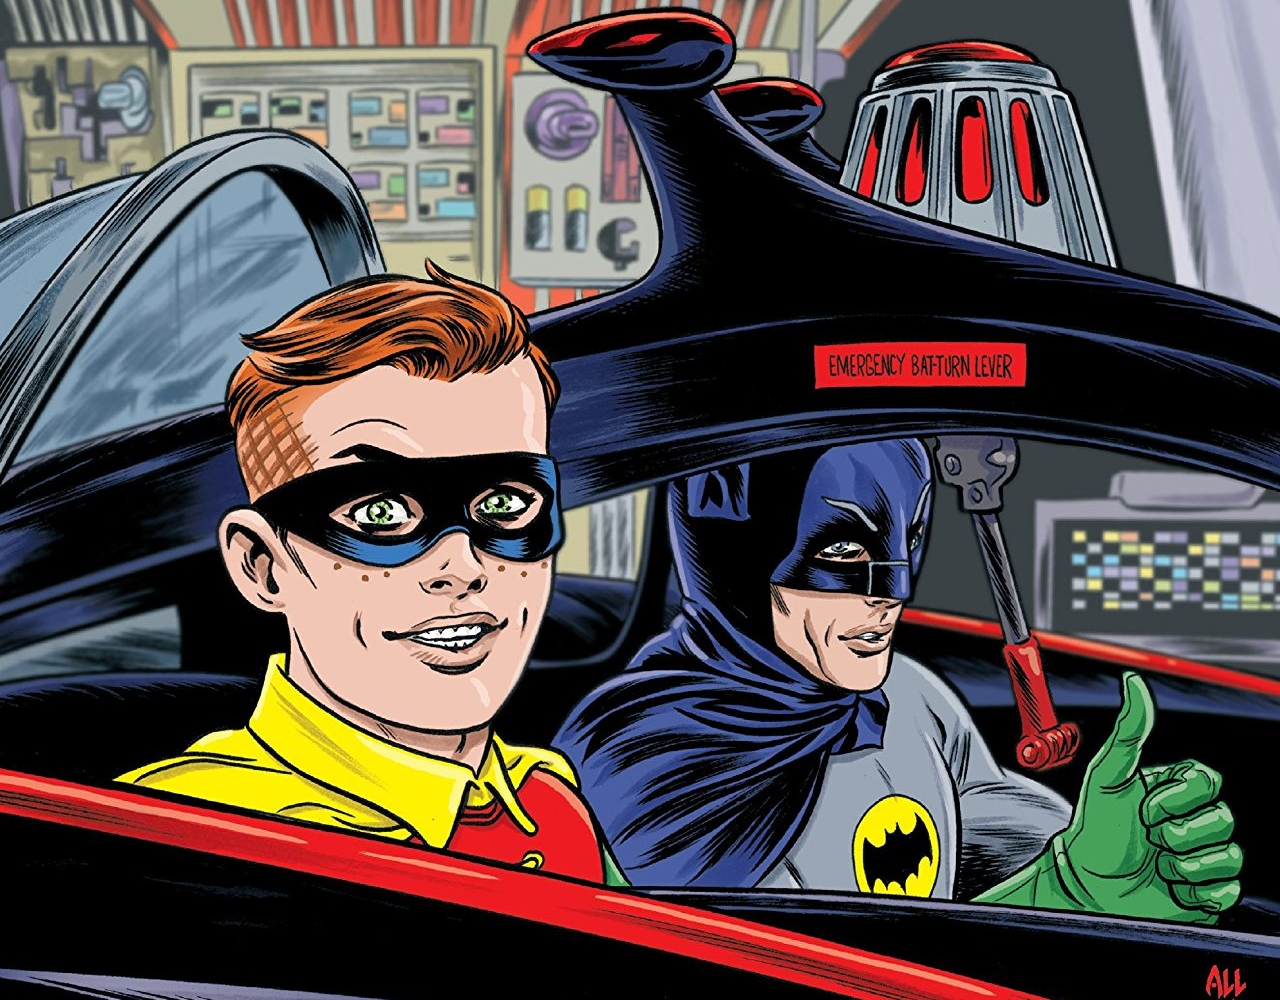 Archie rides in the Batmobile alongside Batman in Archie Meets Batman '66 #4: The Batman of Riverdale Cover A. Written by Michael Moreci and Jeff Parker, drawn by Dan Parent. Archie Comics and DC Entertainment. October 31, 2018